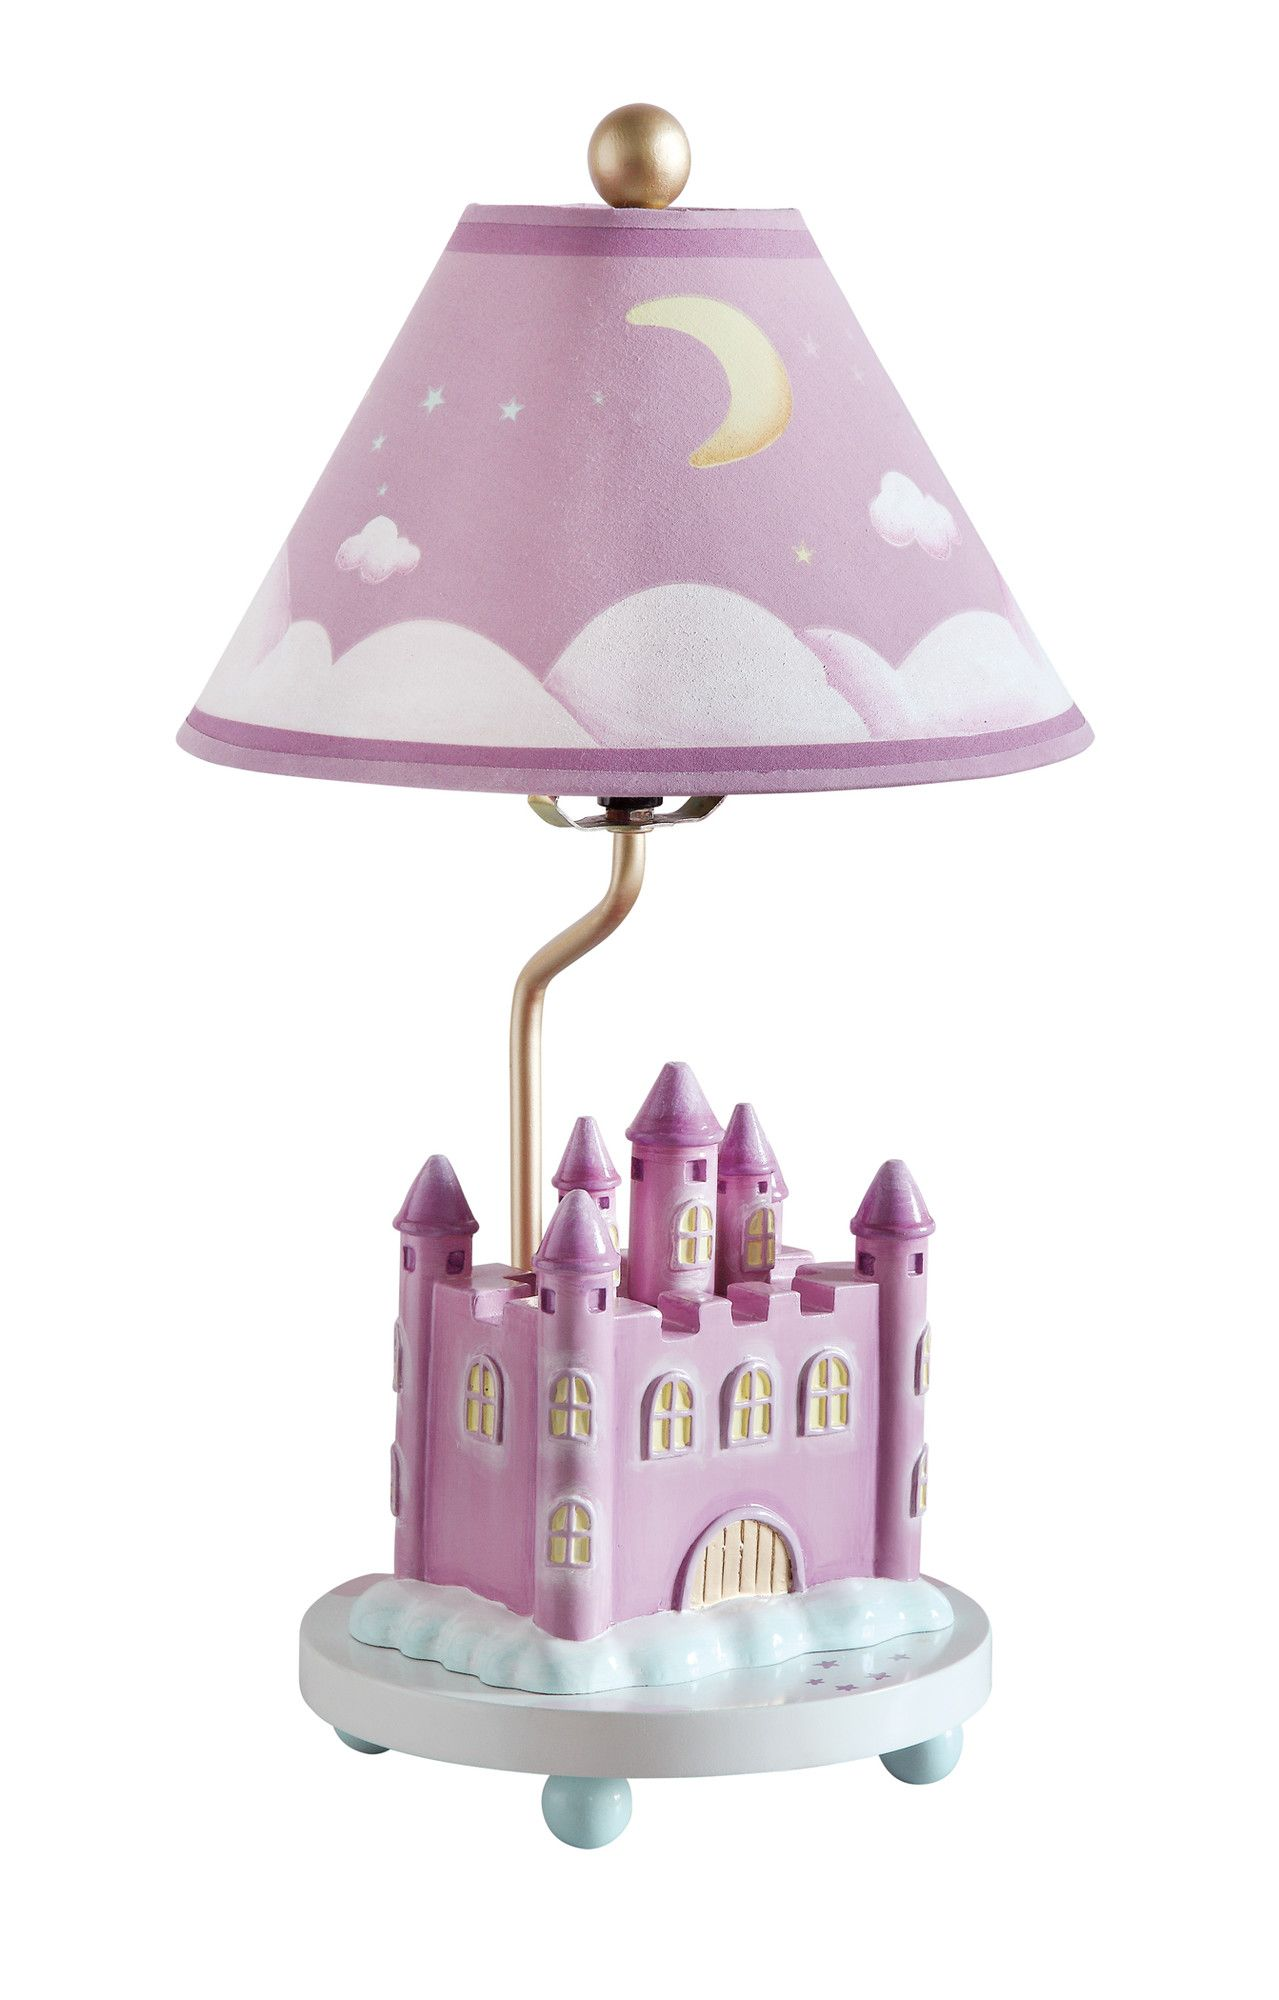 Guidecraft princess 18 h table lamp with empire shade reviews buy your princess lamp here the princess lamp will be great for your little one arubaitofo Choice Image